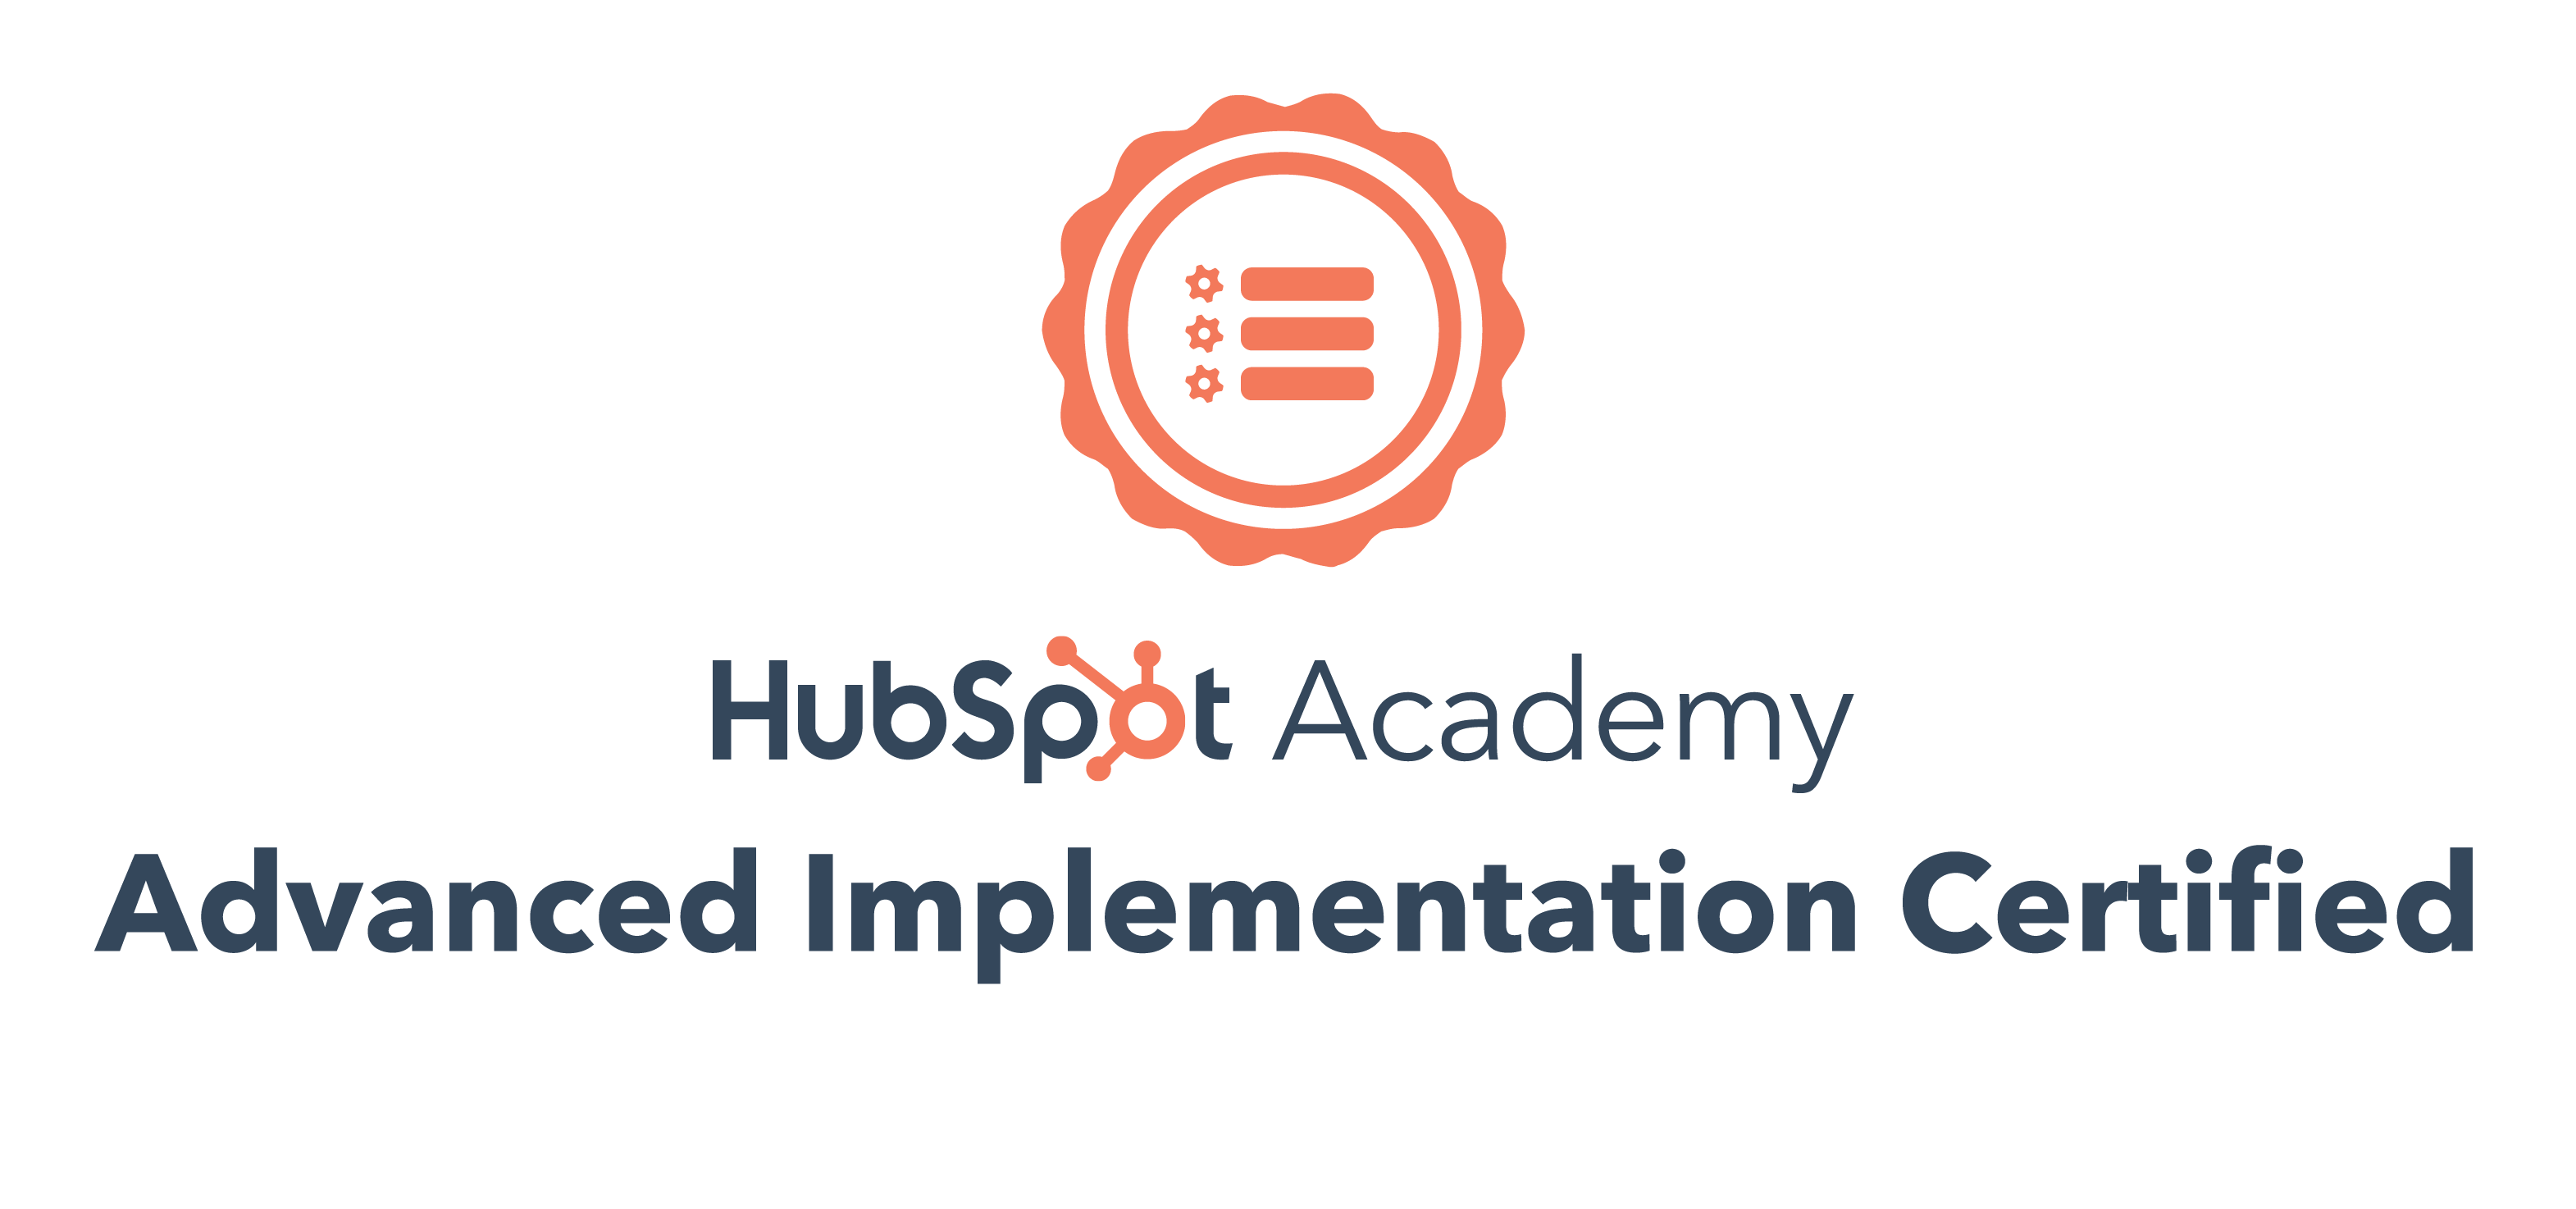 Elixir Solutions is now HubSpot Advanced Implementation Certified